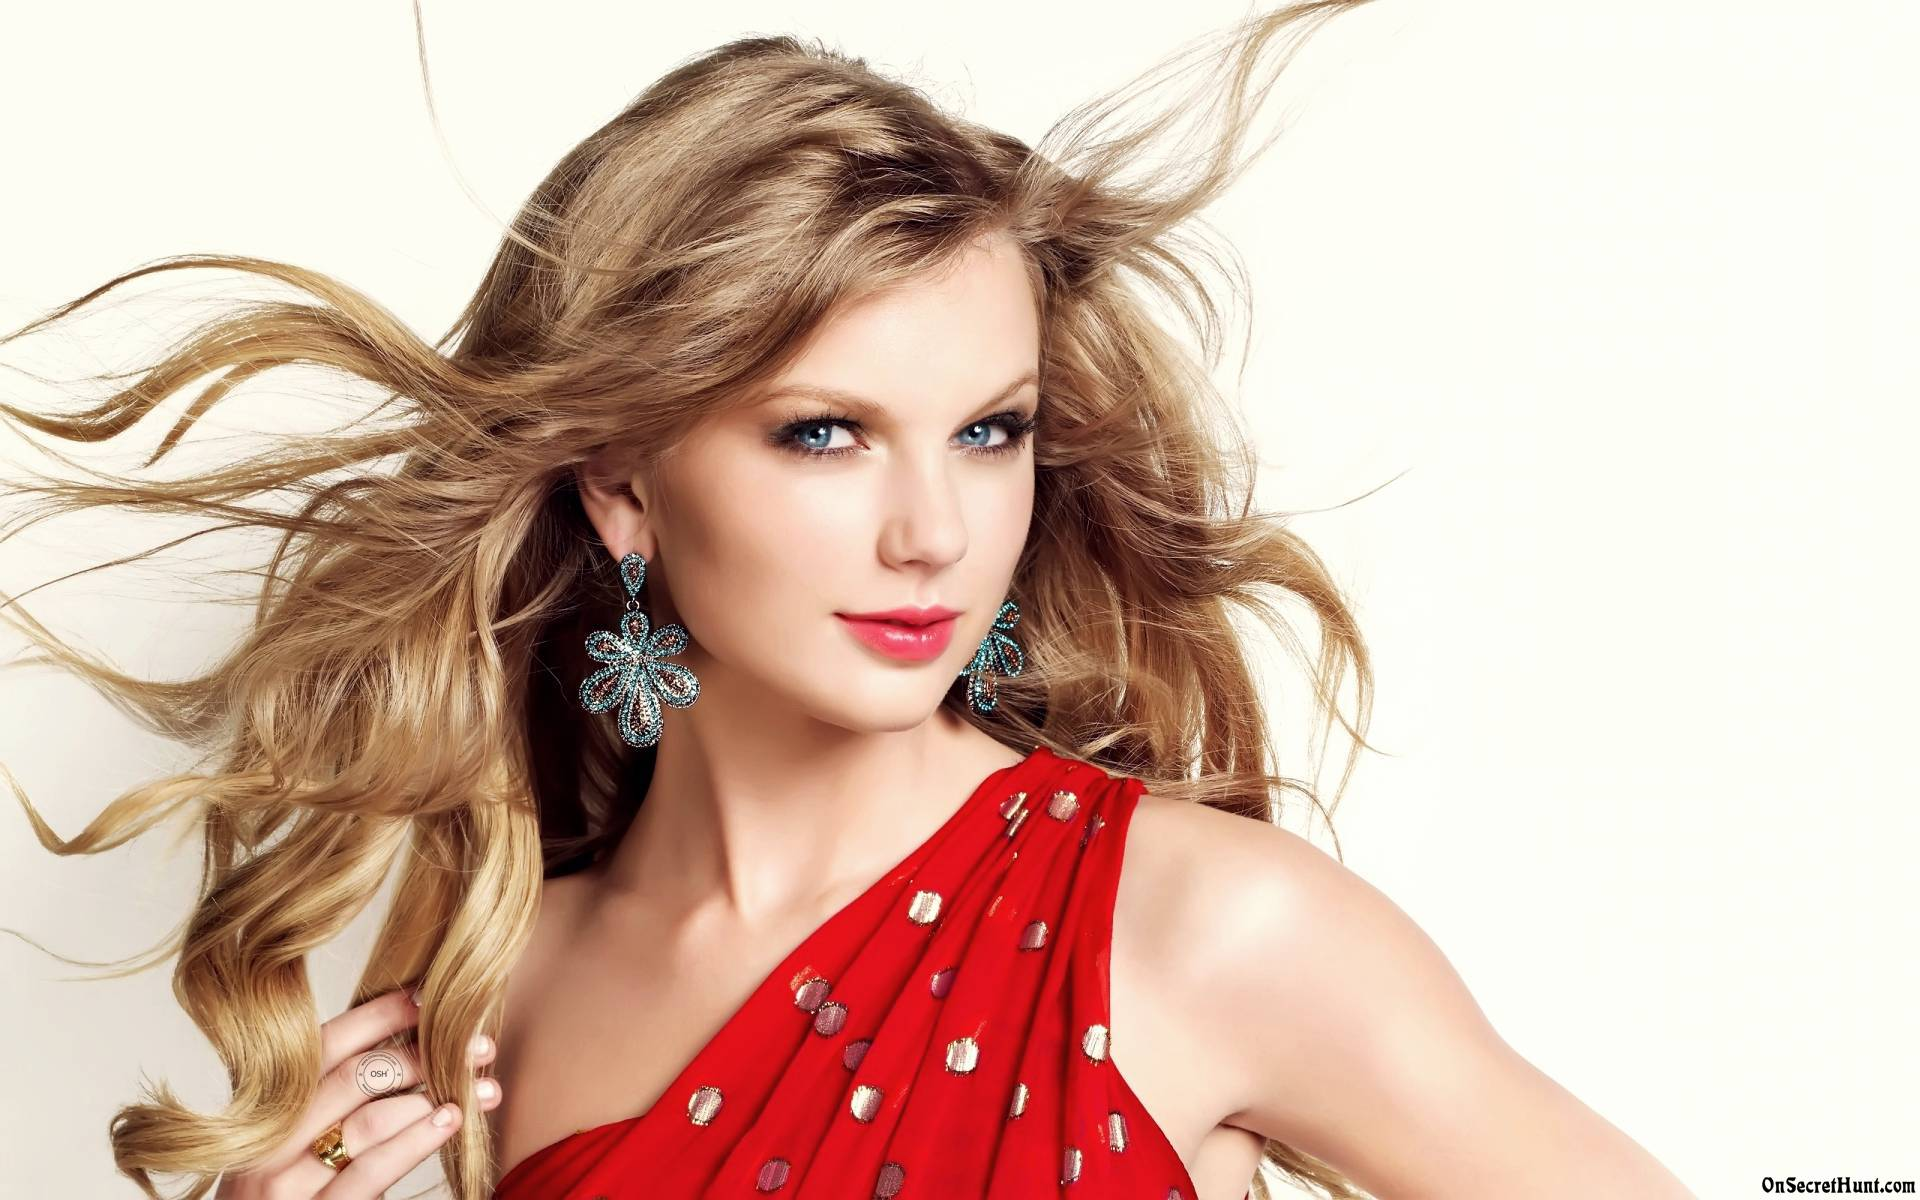 Taylor Swift Donates $50,000 To Charity Taylor Swift